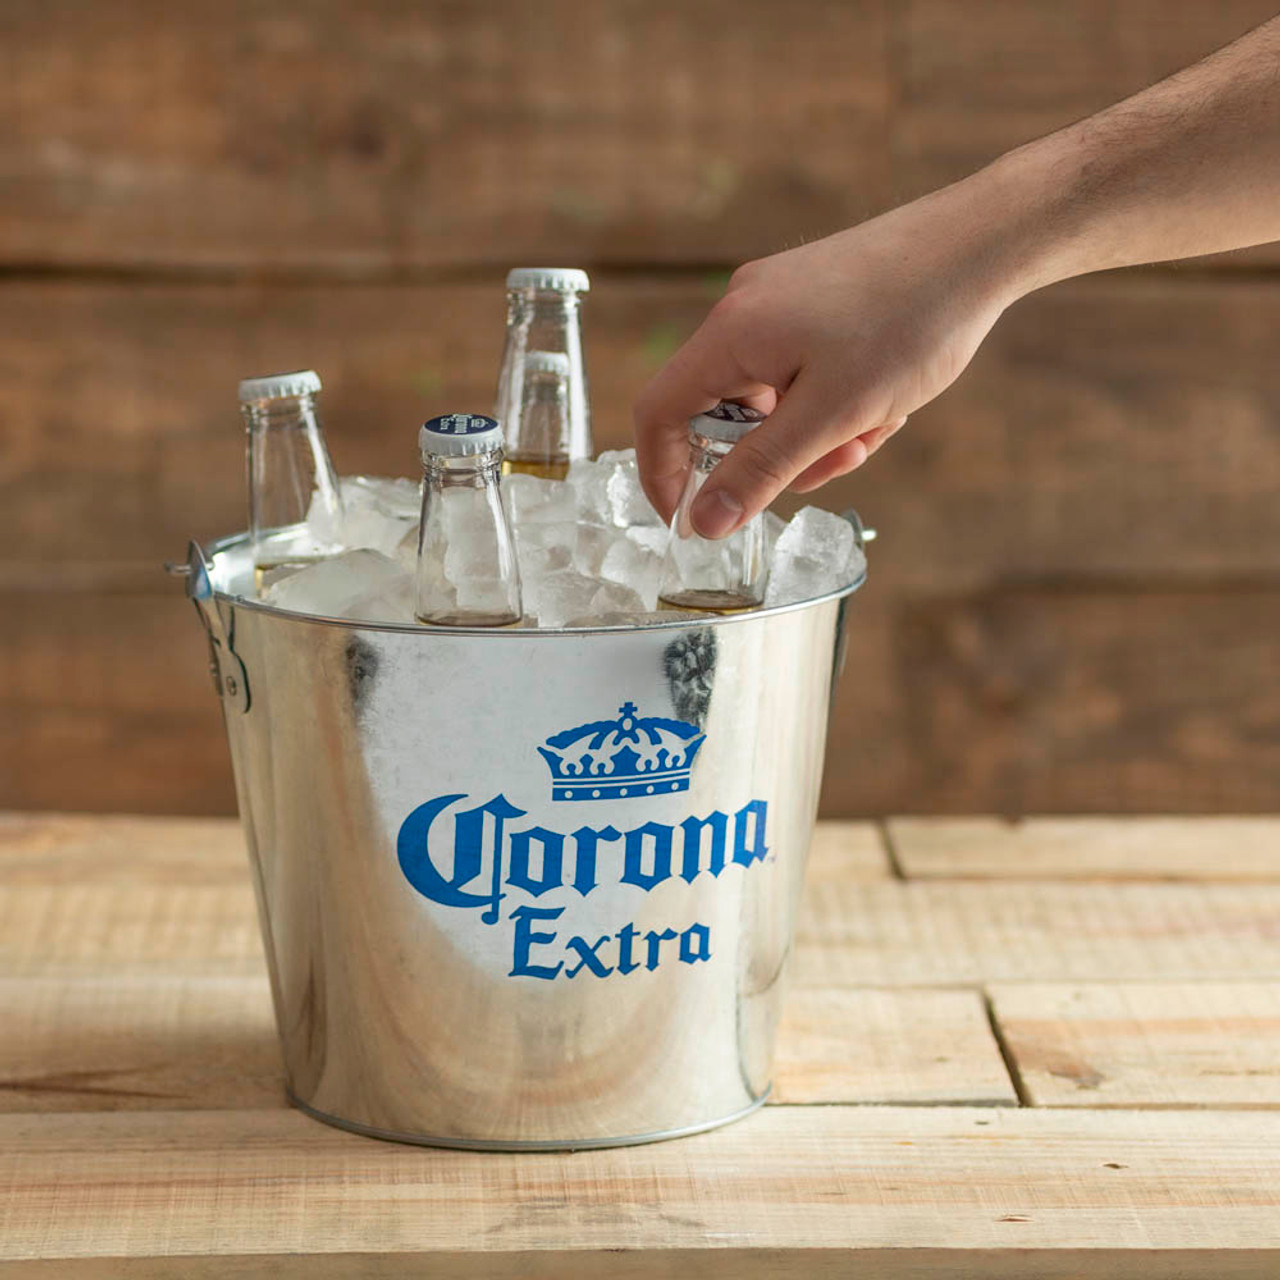 1 NEW Corona Extra Ice Buckets Galvanized Metal for Beer Ale Lager Bottle Cooler